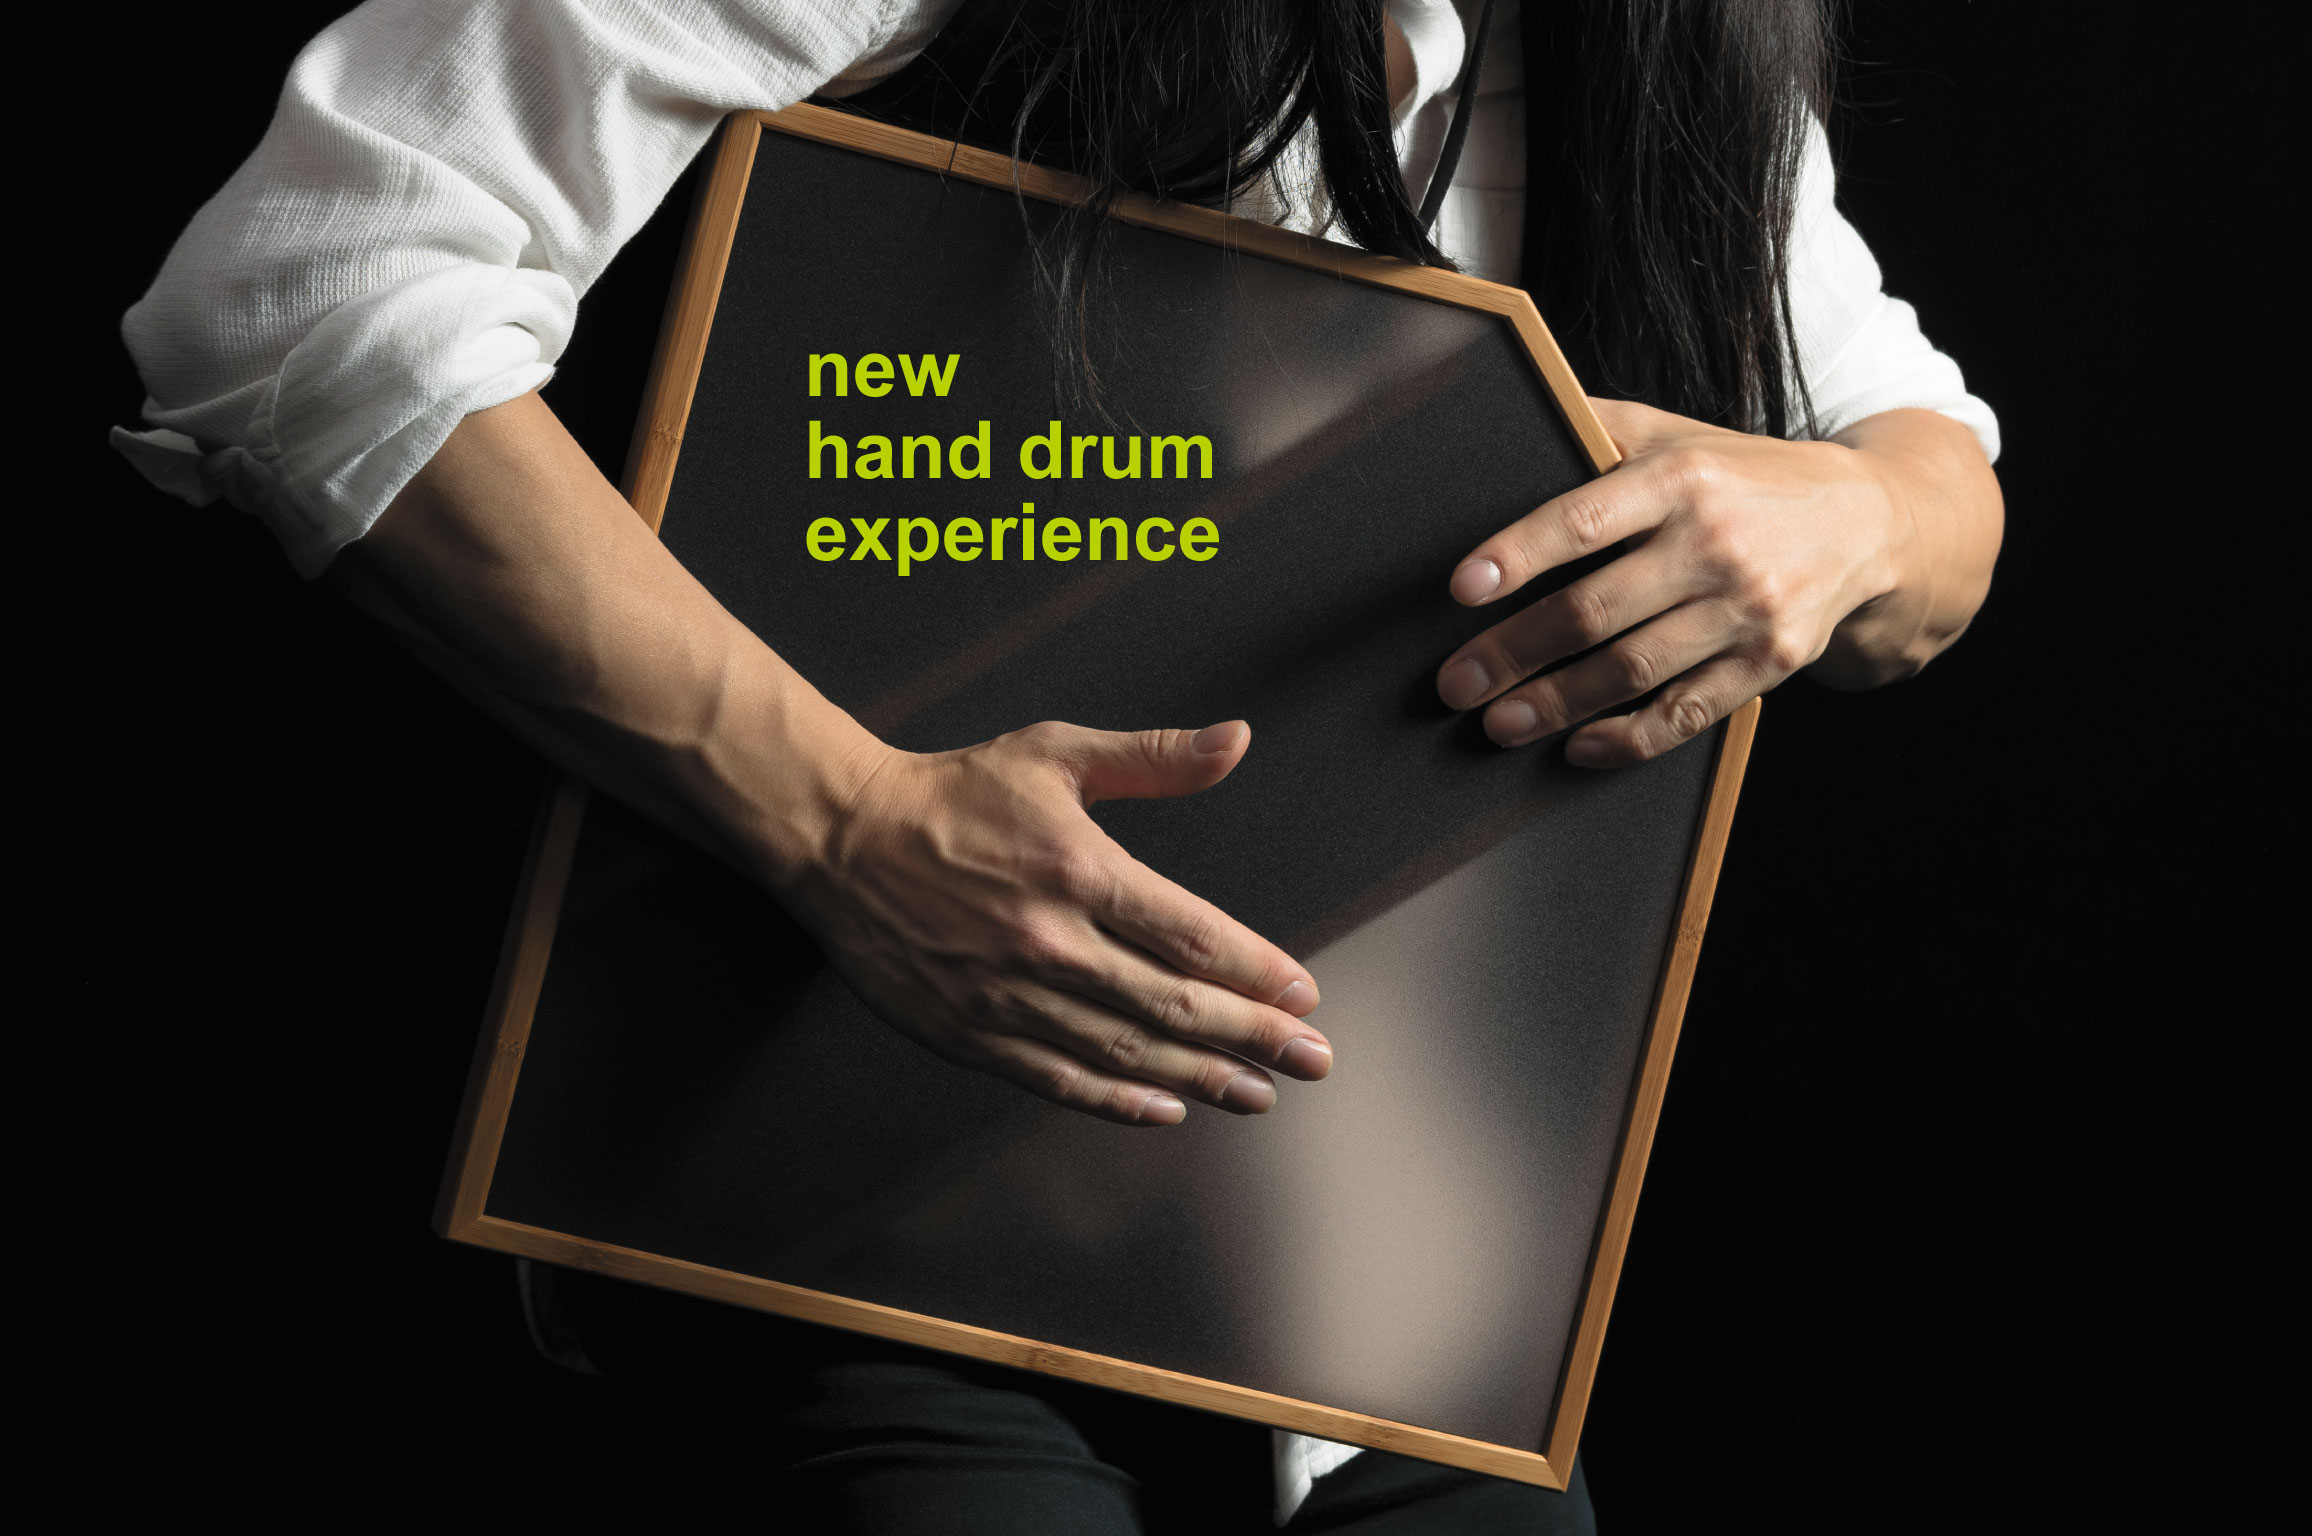 new hand drum experience